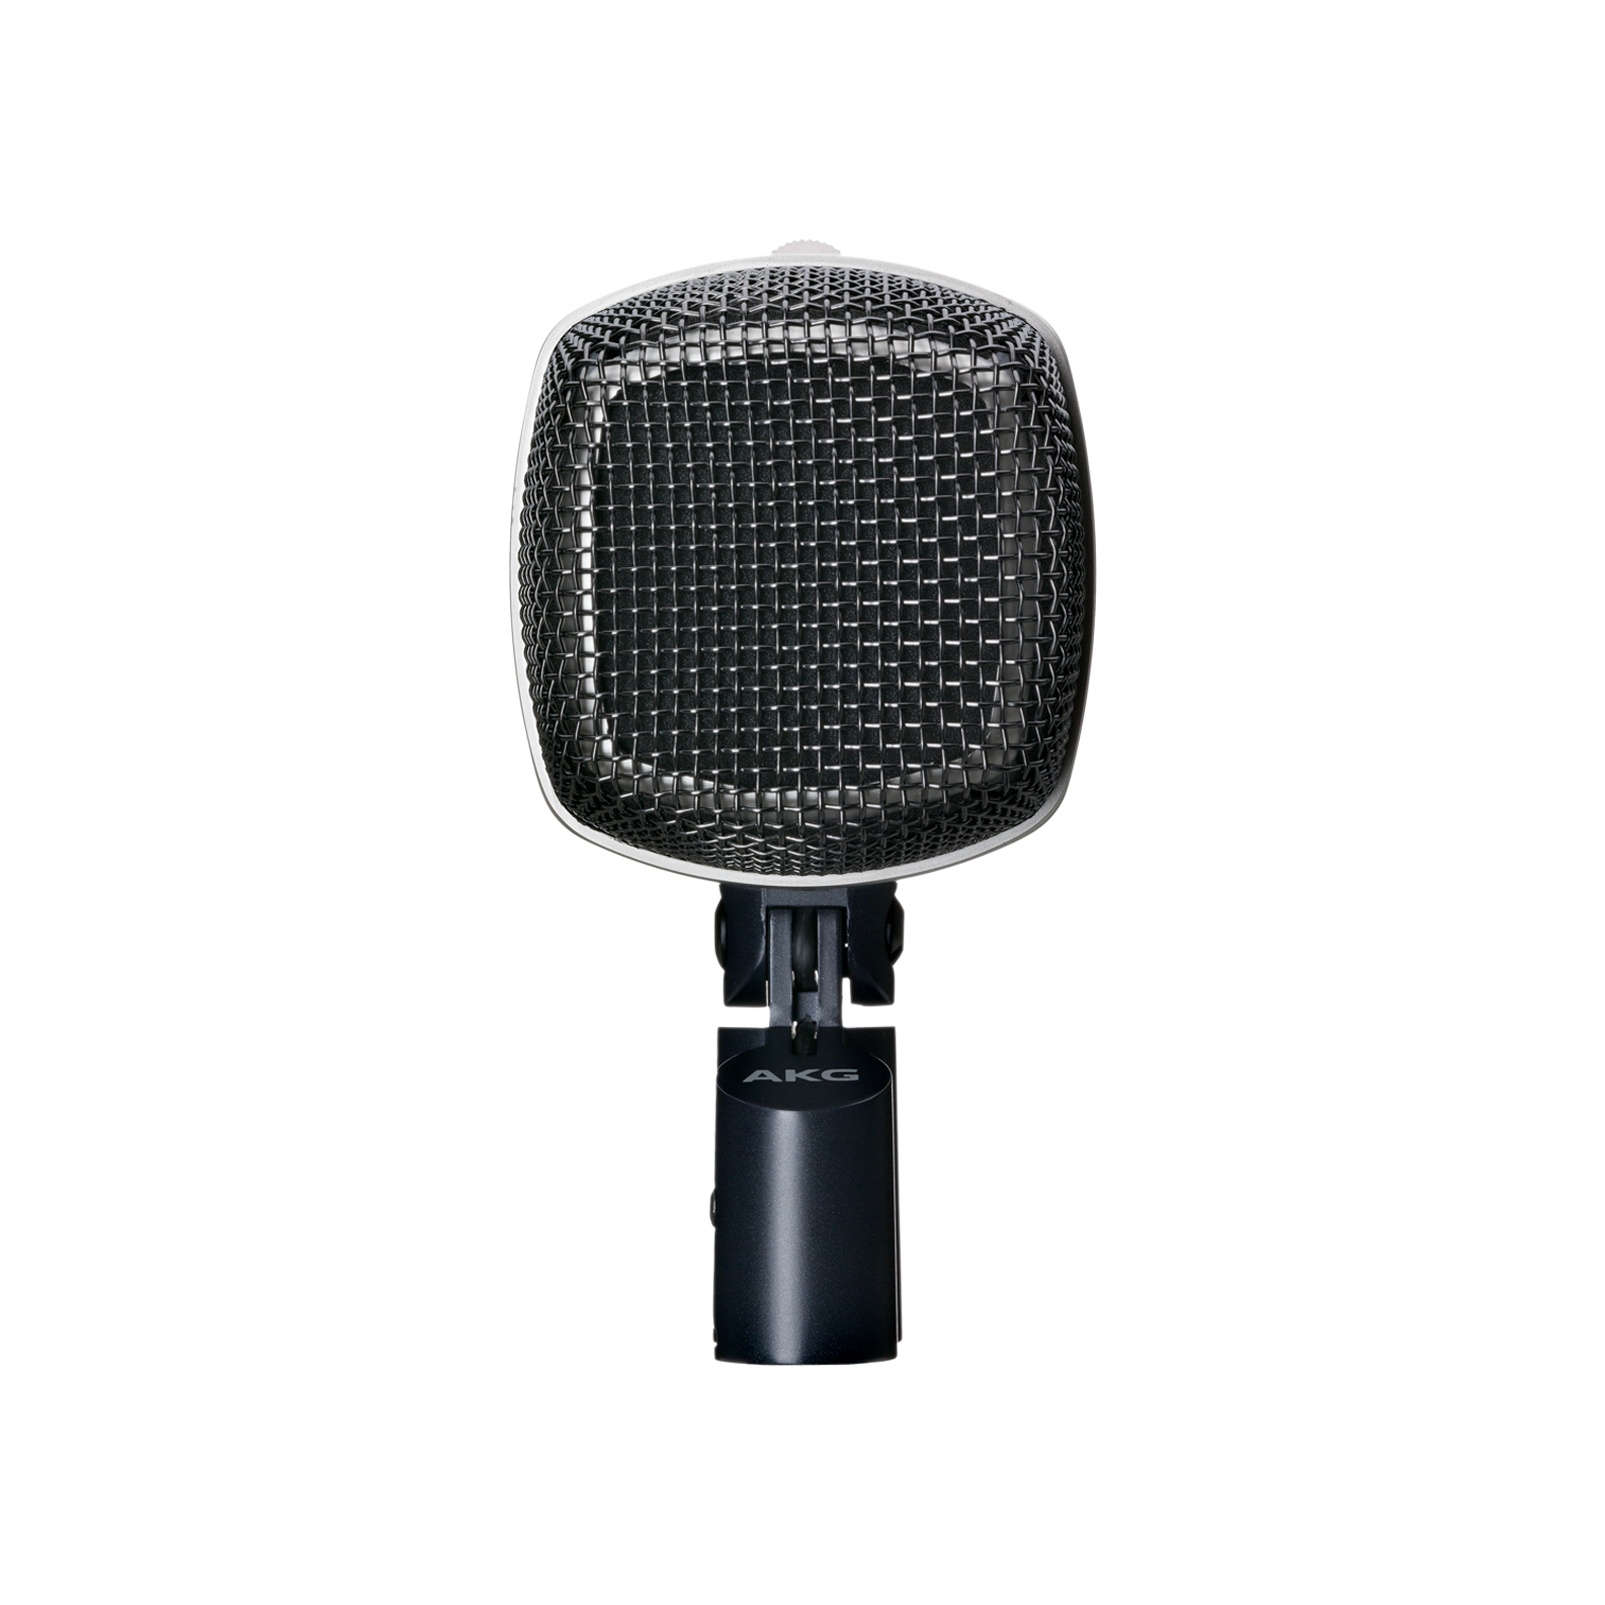 D12 VR - Black - Reference large-diaphragm dynamic microphone - Front